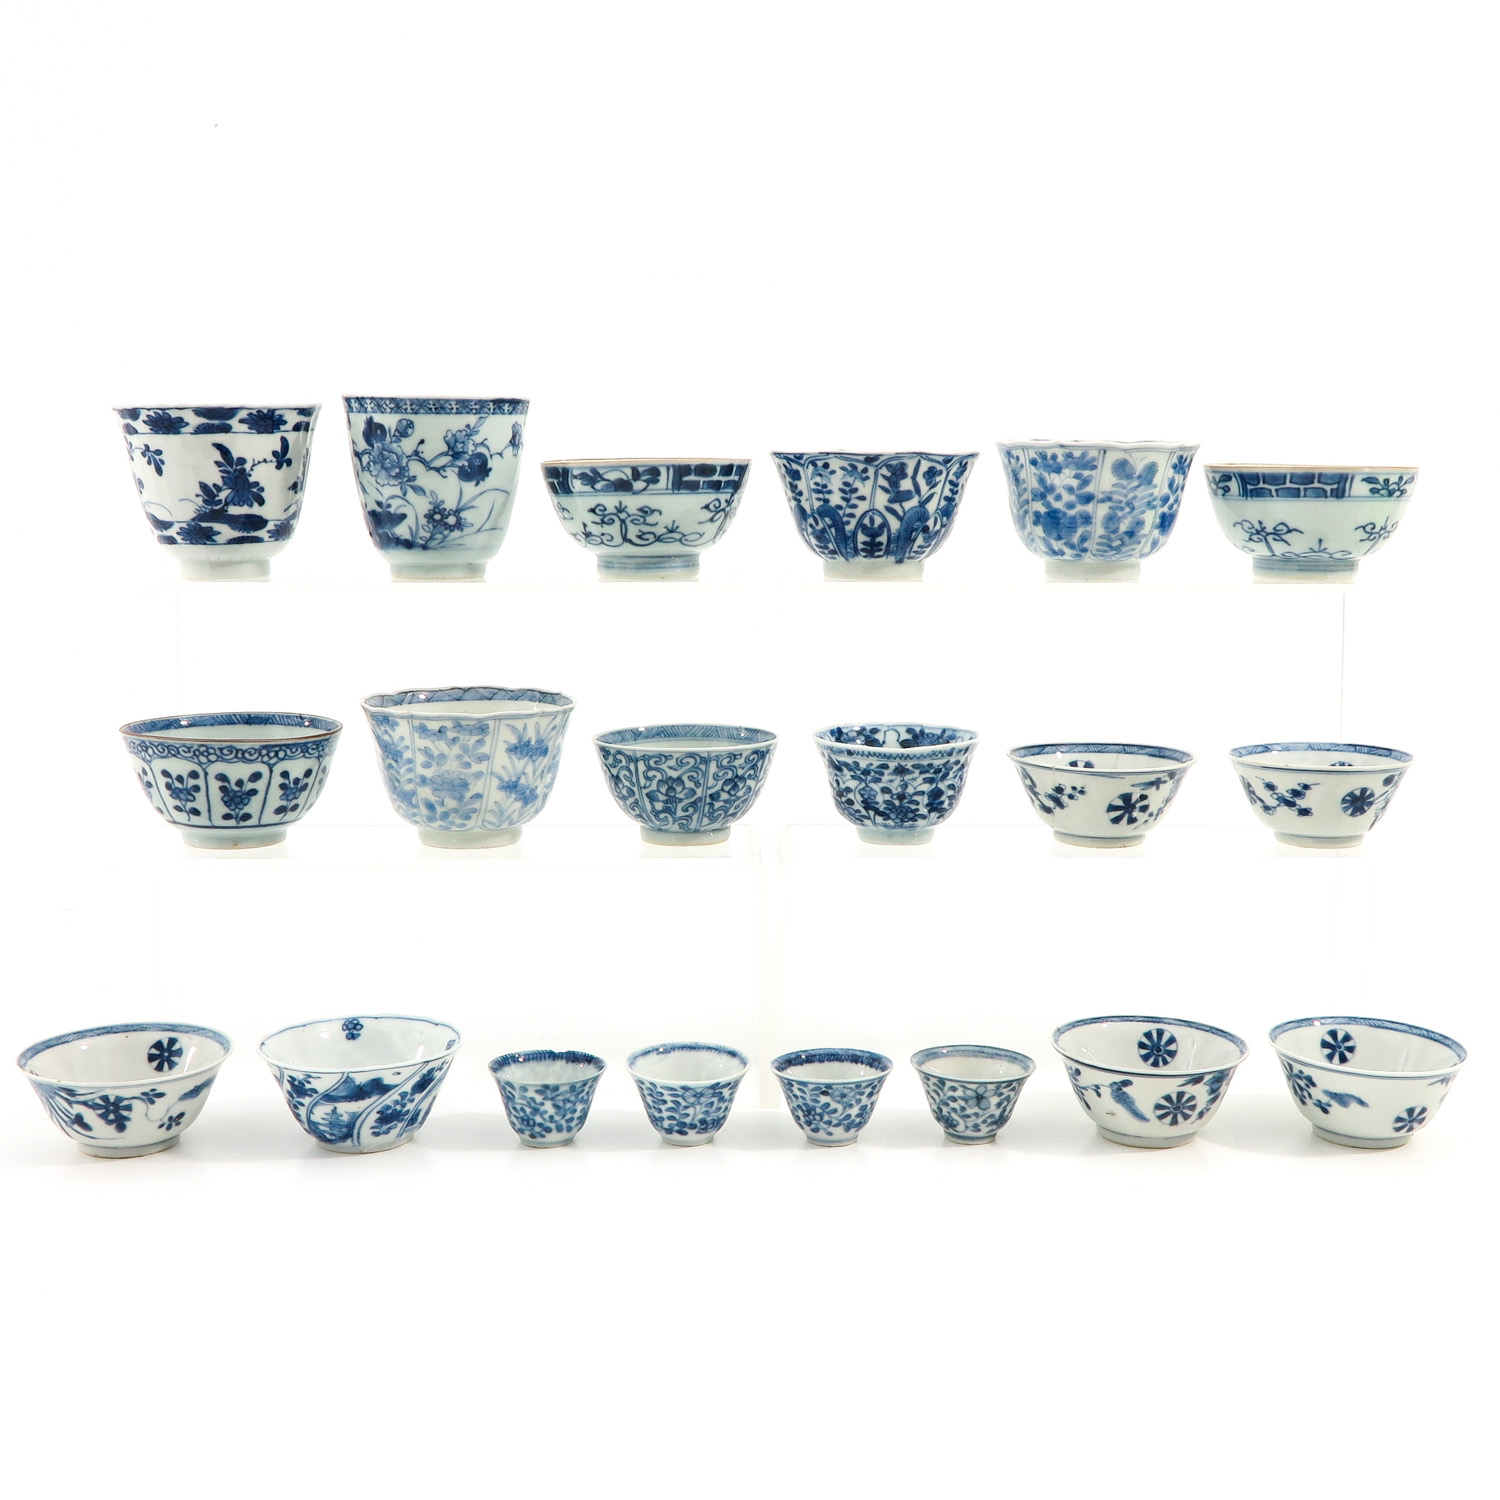 A Collection of 20 Cups - Image 2 of 10